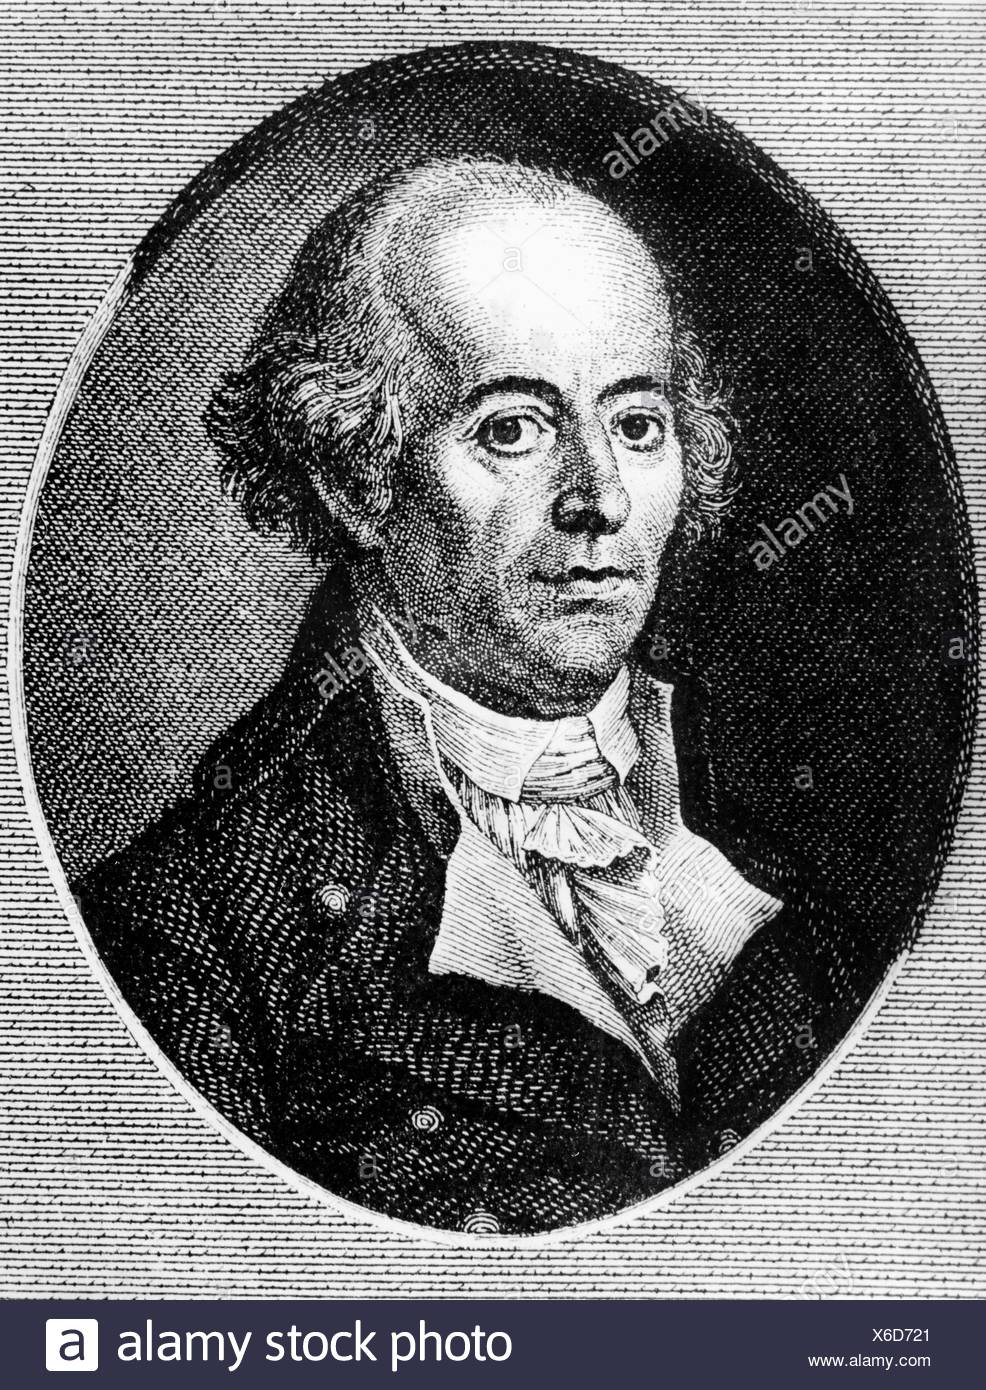 Jung-Stilling, Johann Heinrich, 12.9.1740 - 2.4.1817, German author / writer, portrait, profile, copper engraving, Artist's Copyright has not to be cleared - Stock Image